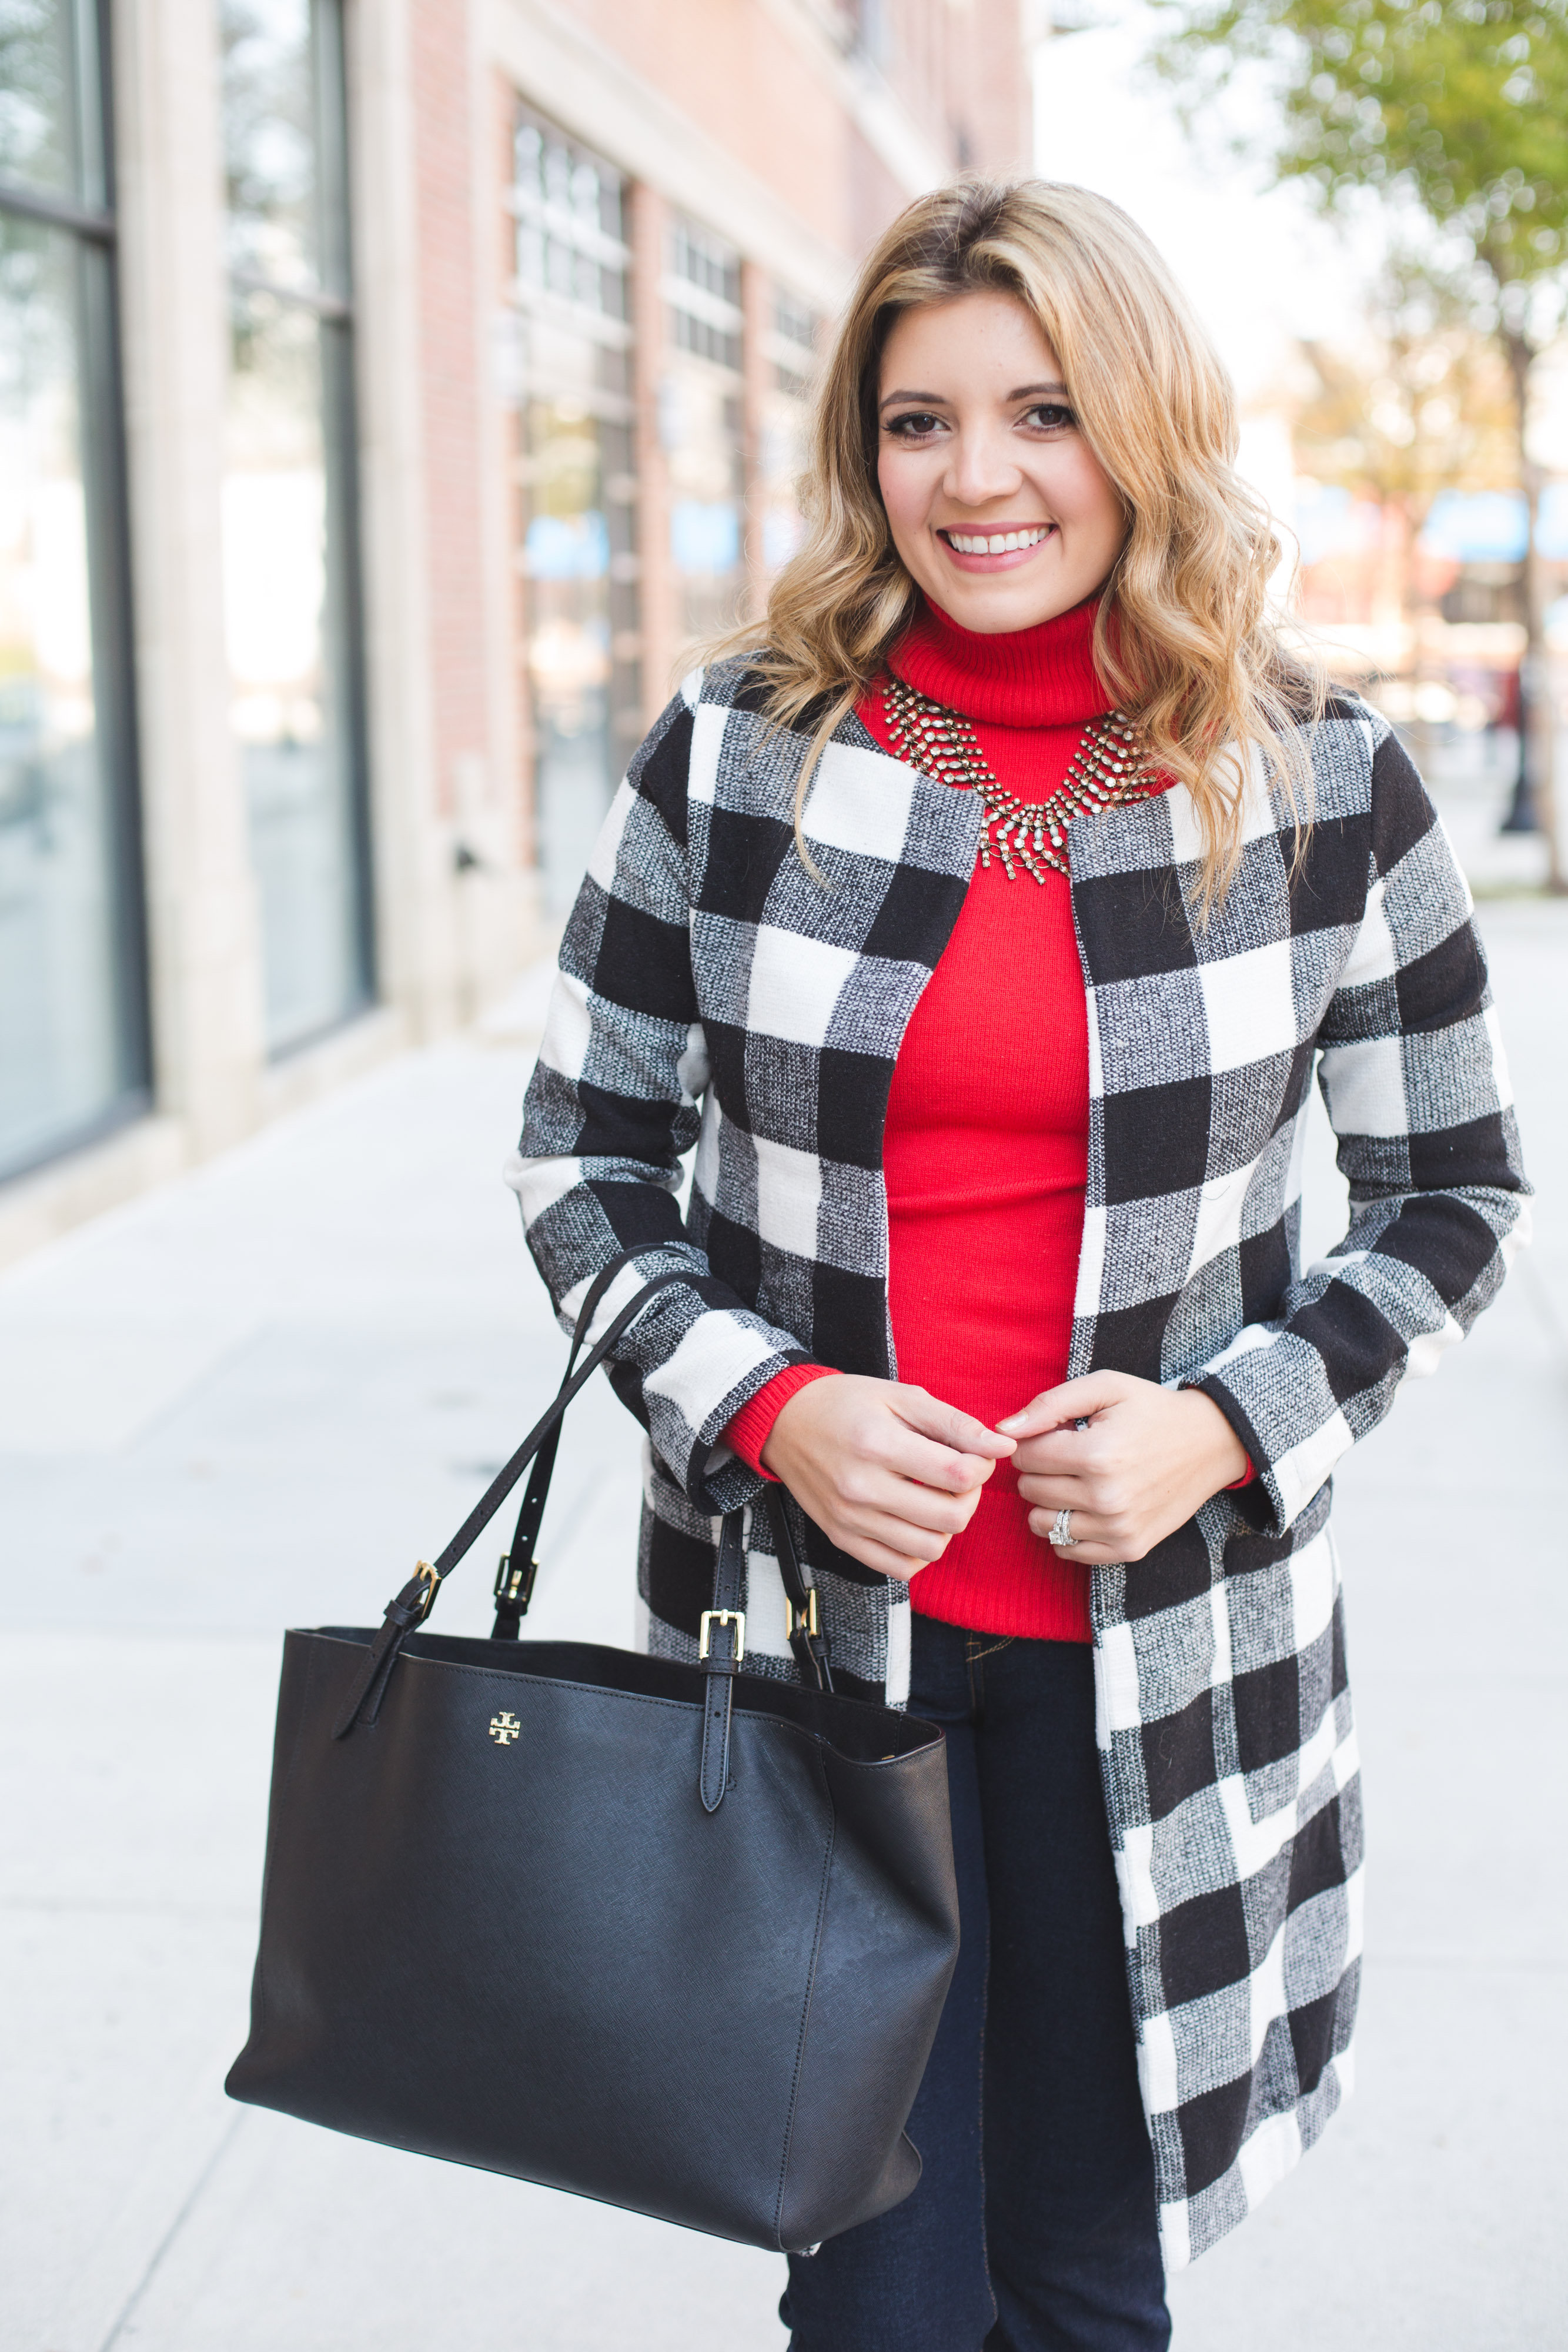 buffalo plaid coat outfit - red turtleneck sweater, white and black buffalo plaid jacket | www.bylaurenm.com